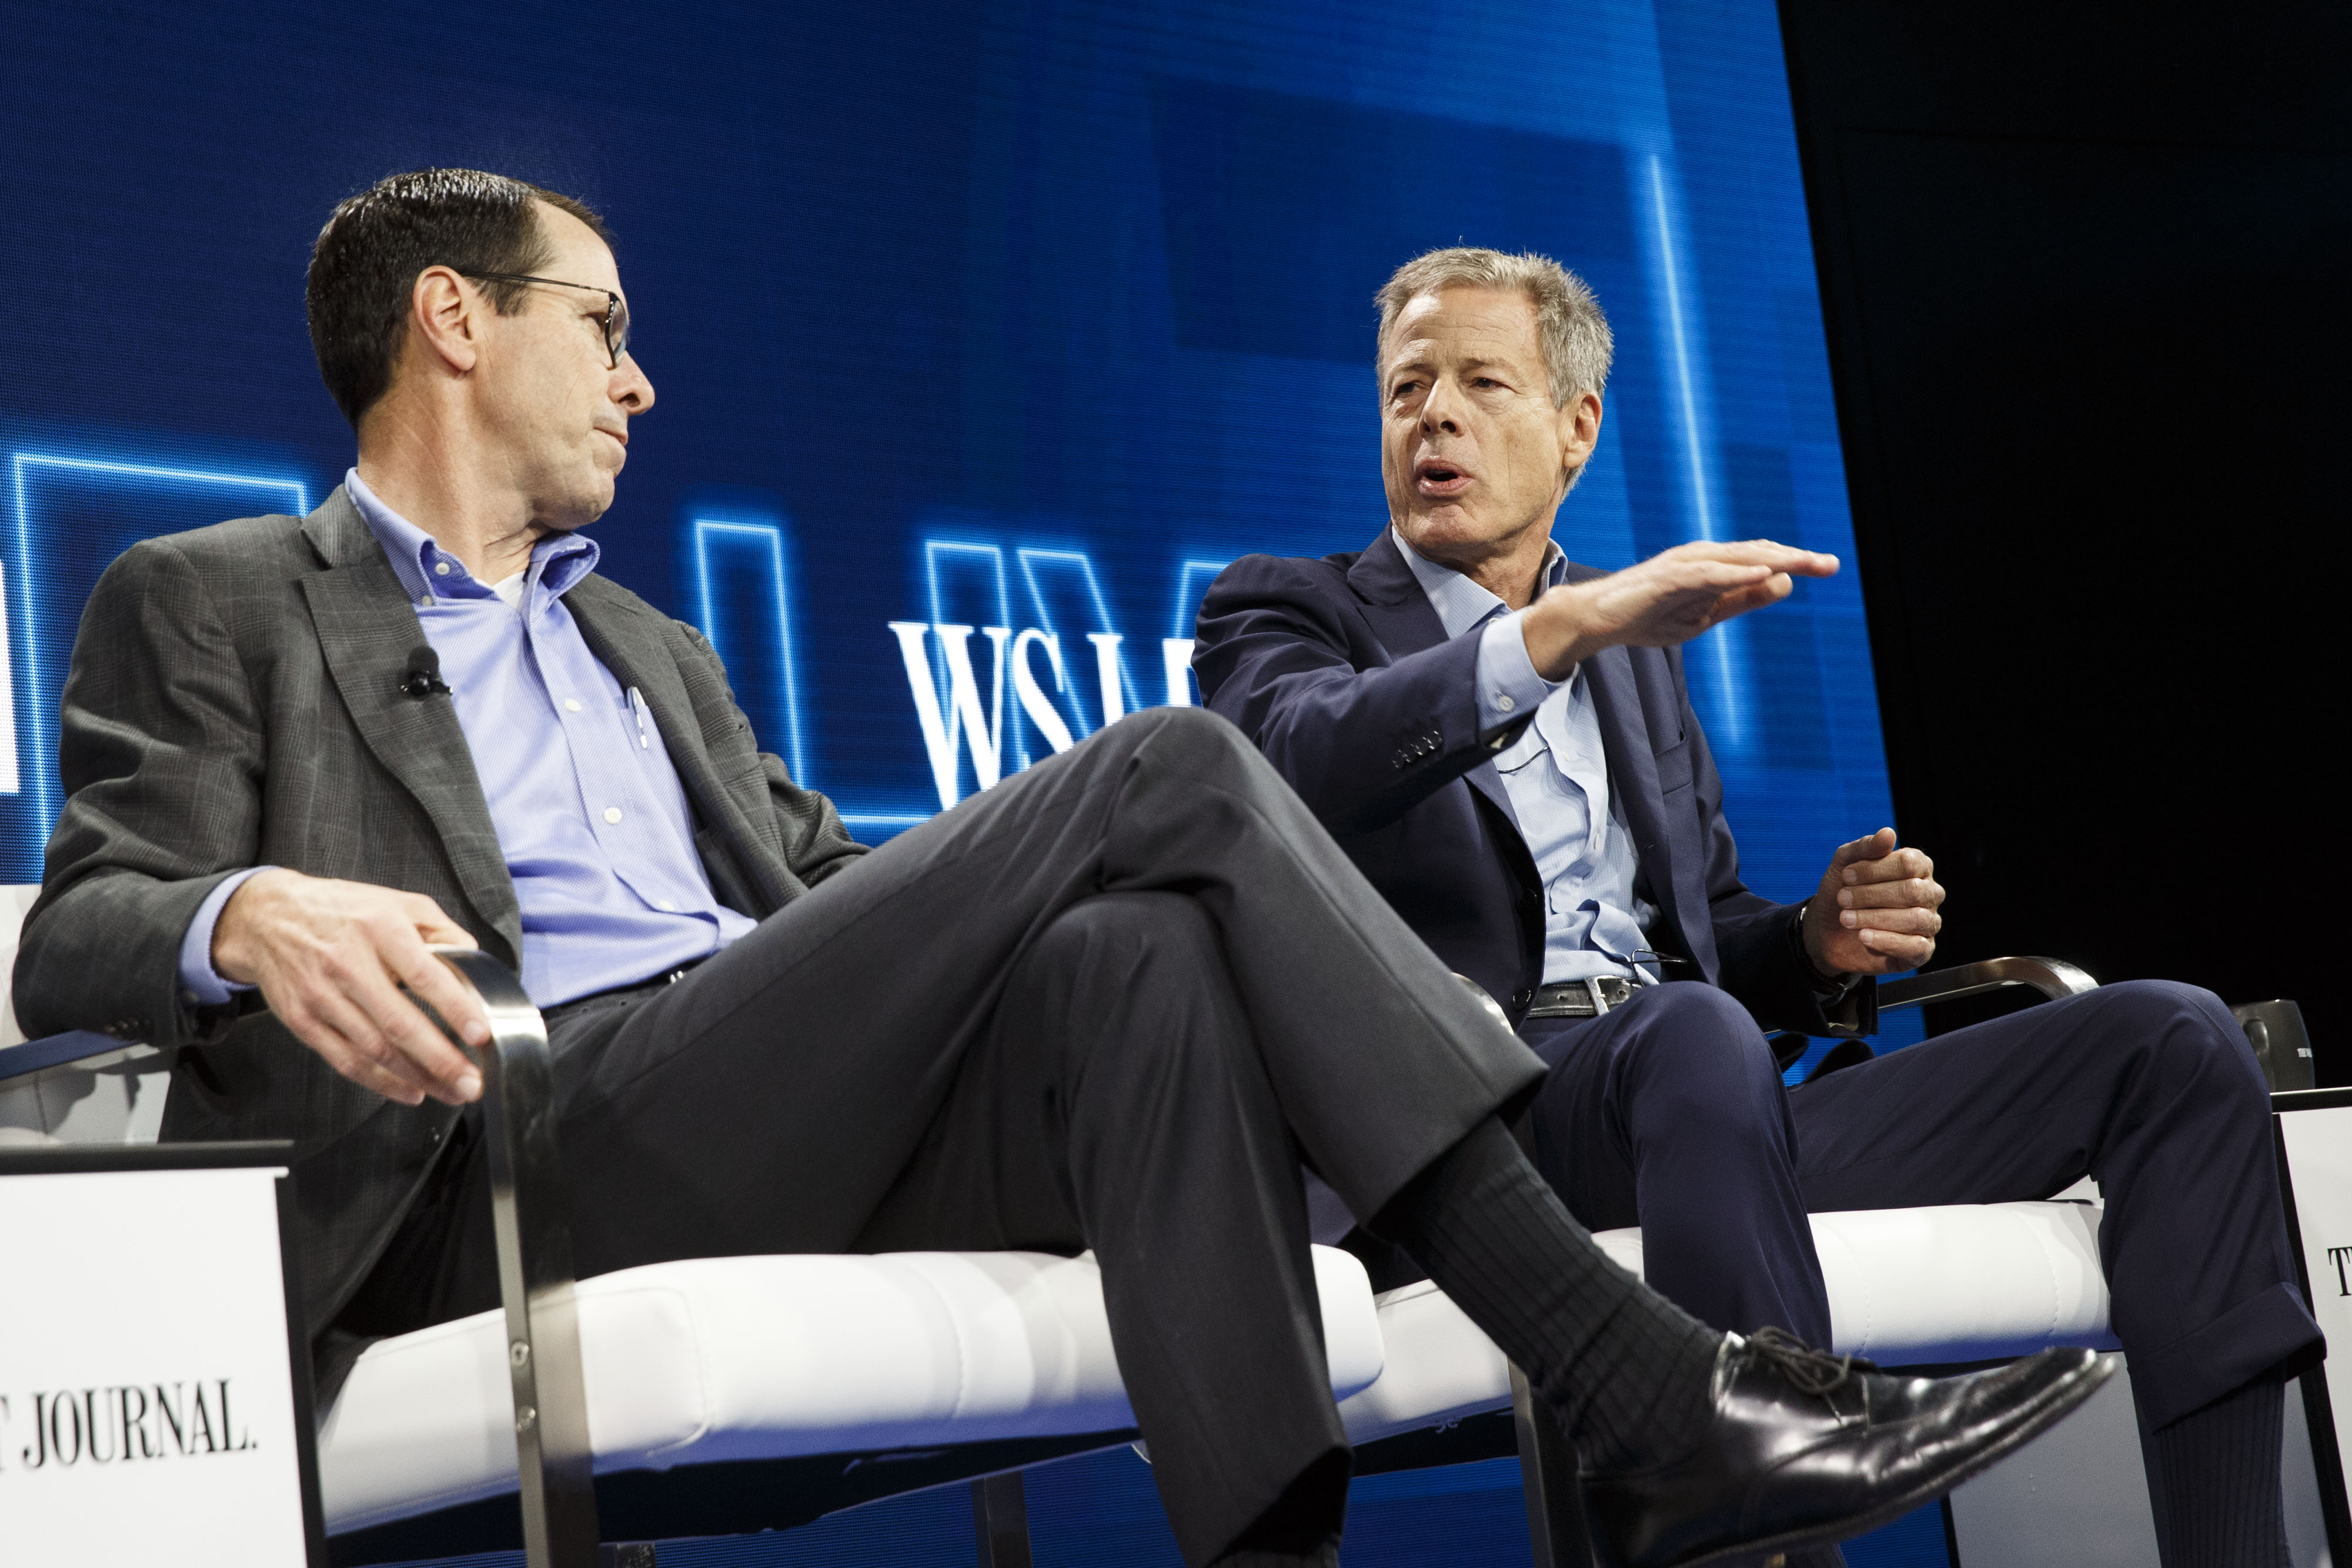 Randall Stephenson, chairman and chief executive officer of AT&T Inc., left, listens while Jeffrey  Jeff  Bewkes, chairman and chief executive officer of Time Warner Inc., speaks during the WSJDLive Global Technology Conference in Laguna Beach, California, U.S., on Tuesday, Oct. 25, 2016.